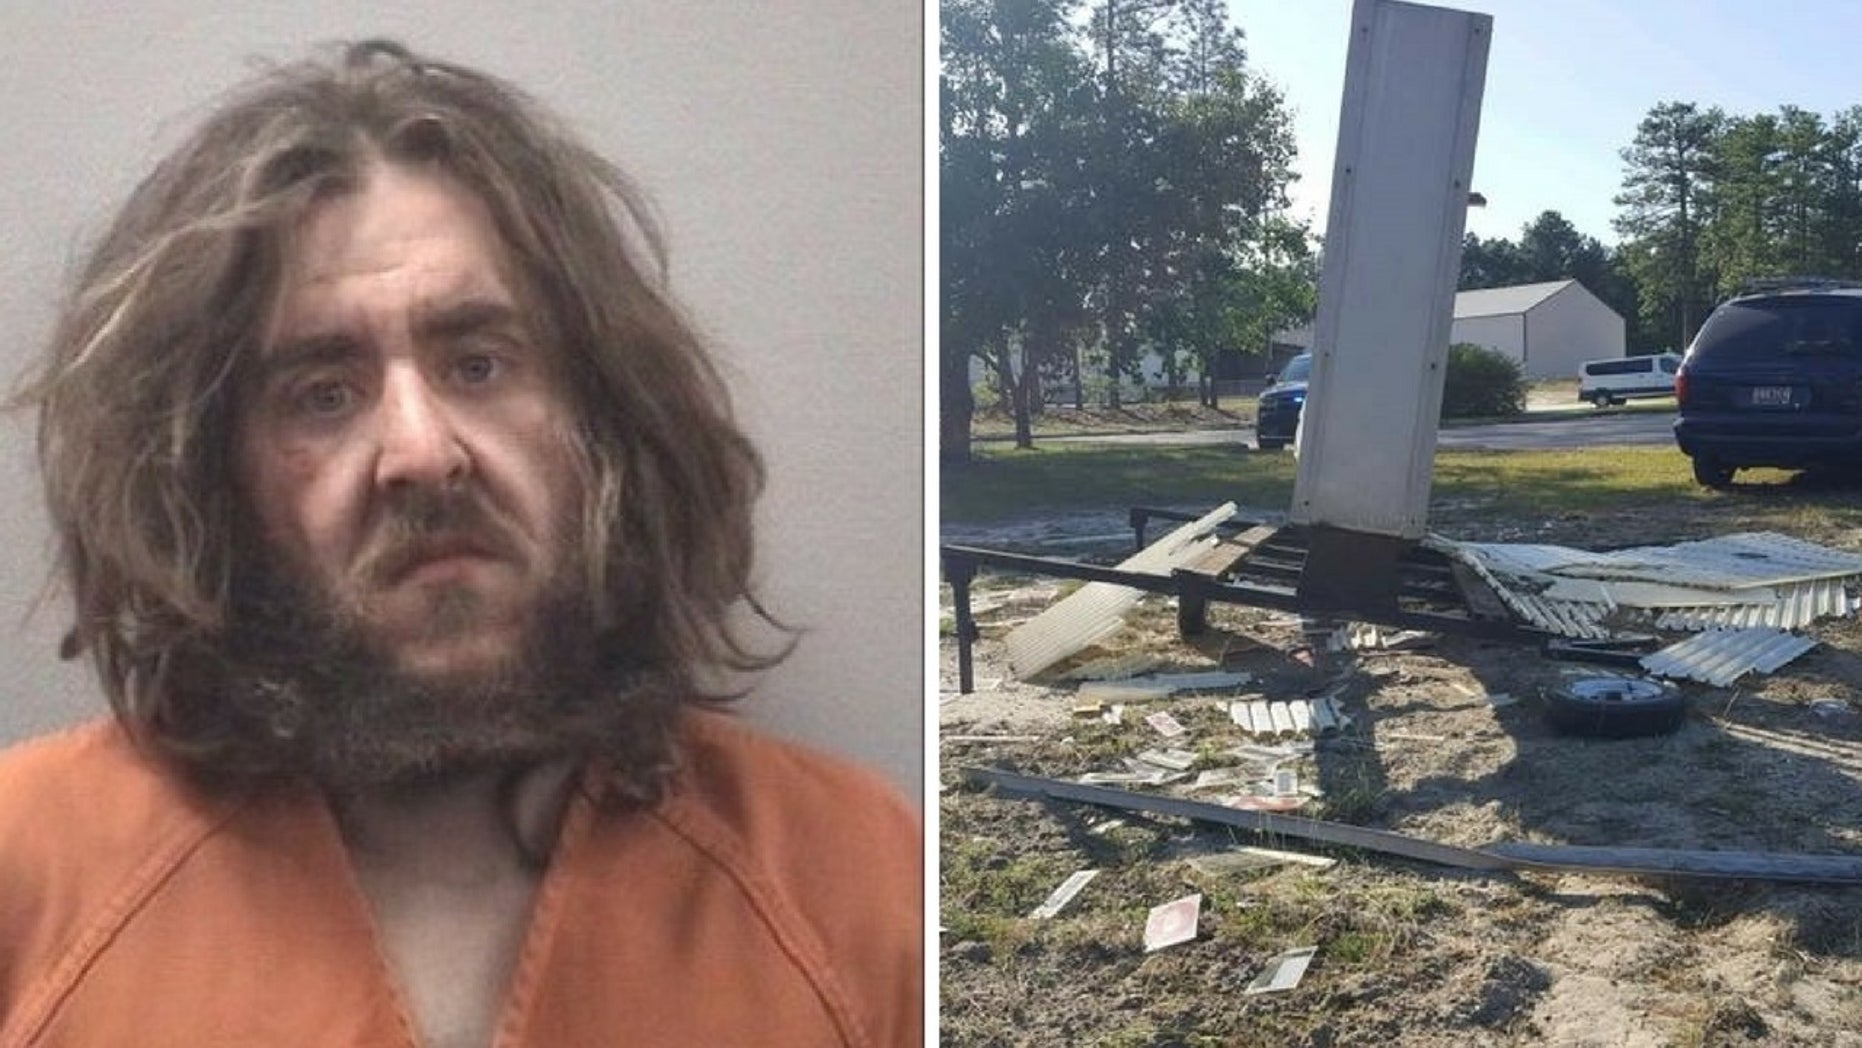 """Marion Samuel Corba, the self-proclaimed """"Messenger of meth,"""" allegedly wrecked his vehicle on the grounds of the South Carolina National Guard Armory."""